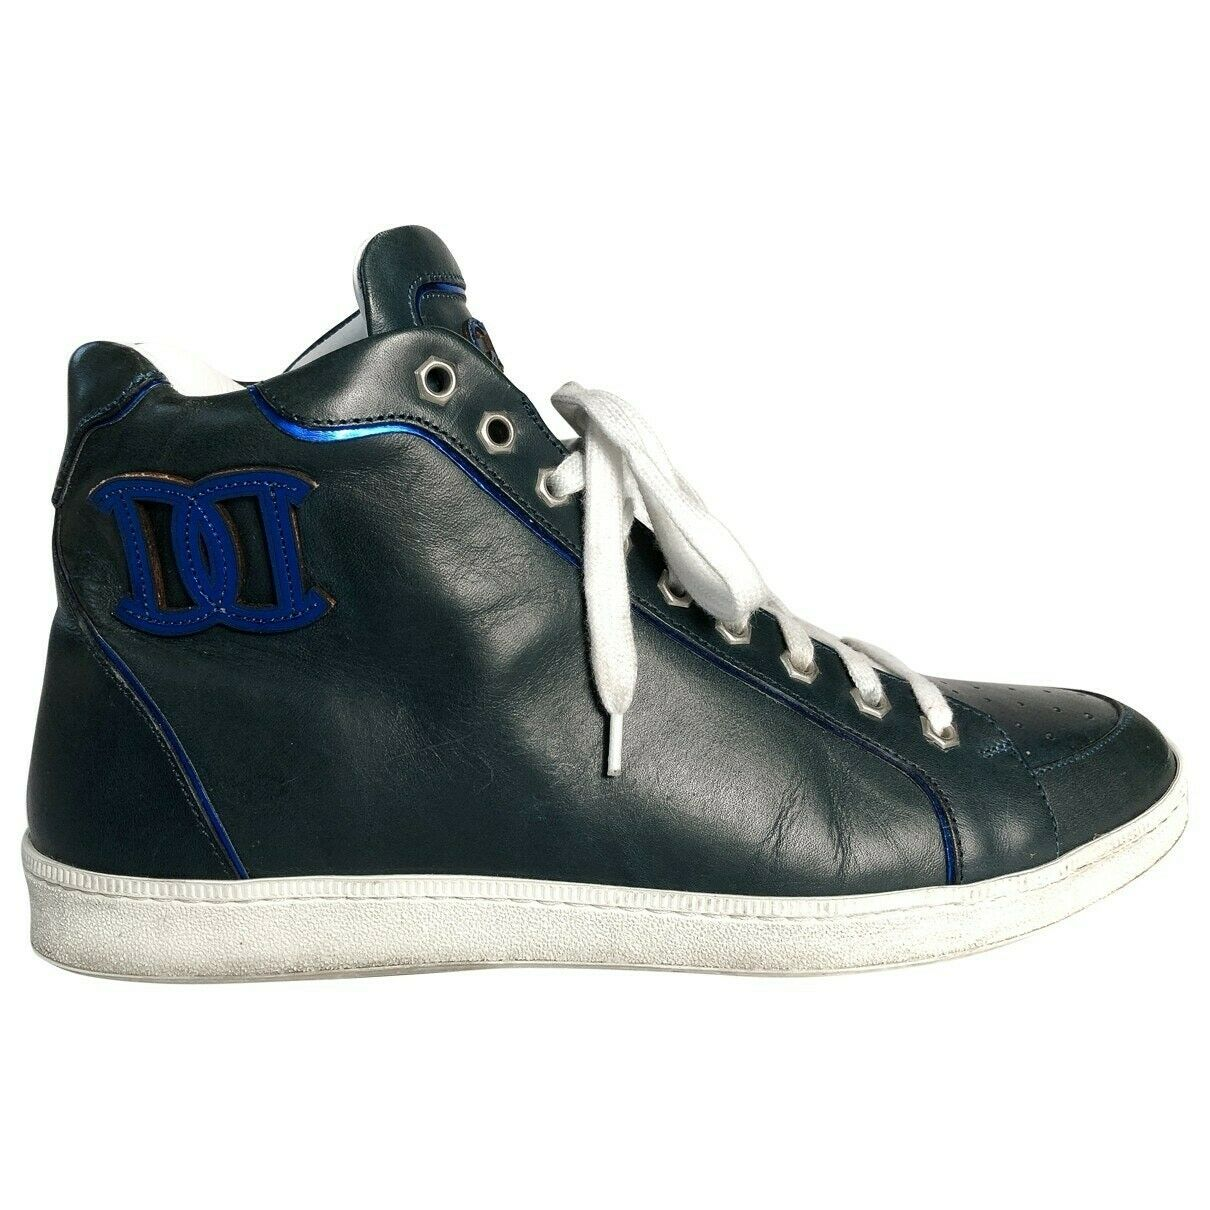 Dsquared2 Navy Blue High Top Trainer Boots with Metallic Detailing 42EU and 8UK